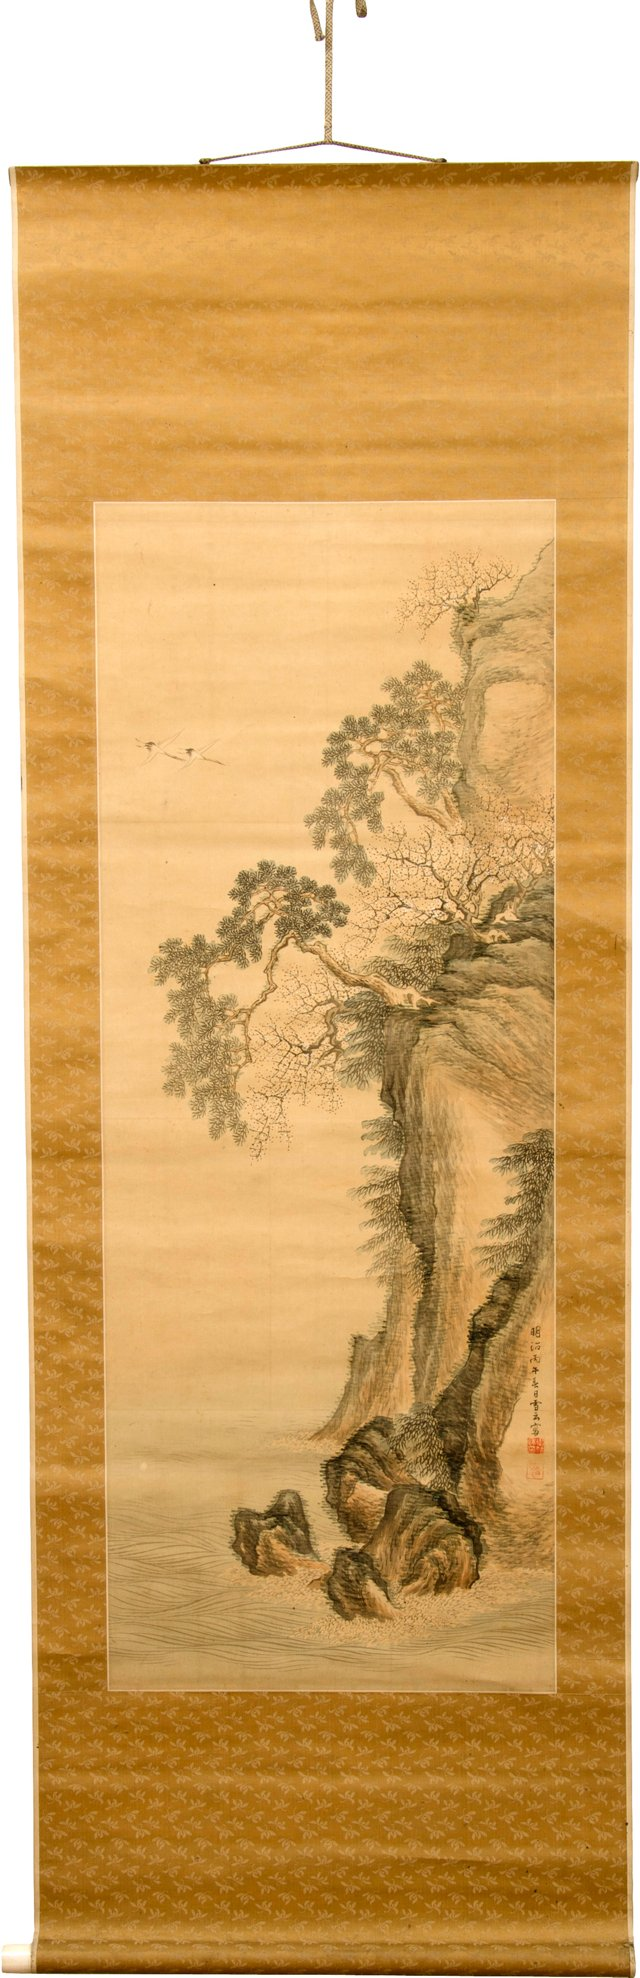 Antique Japanese Hanging Scroll